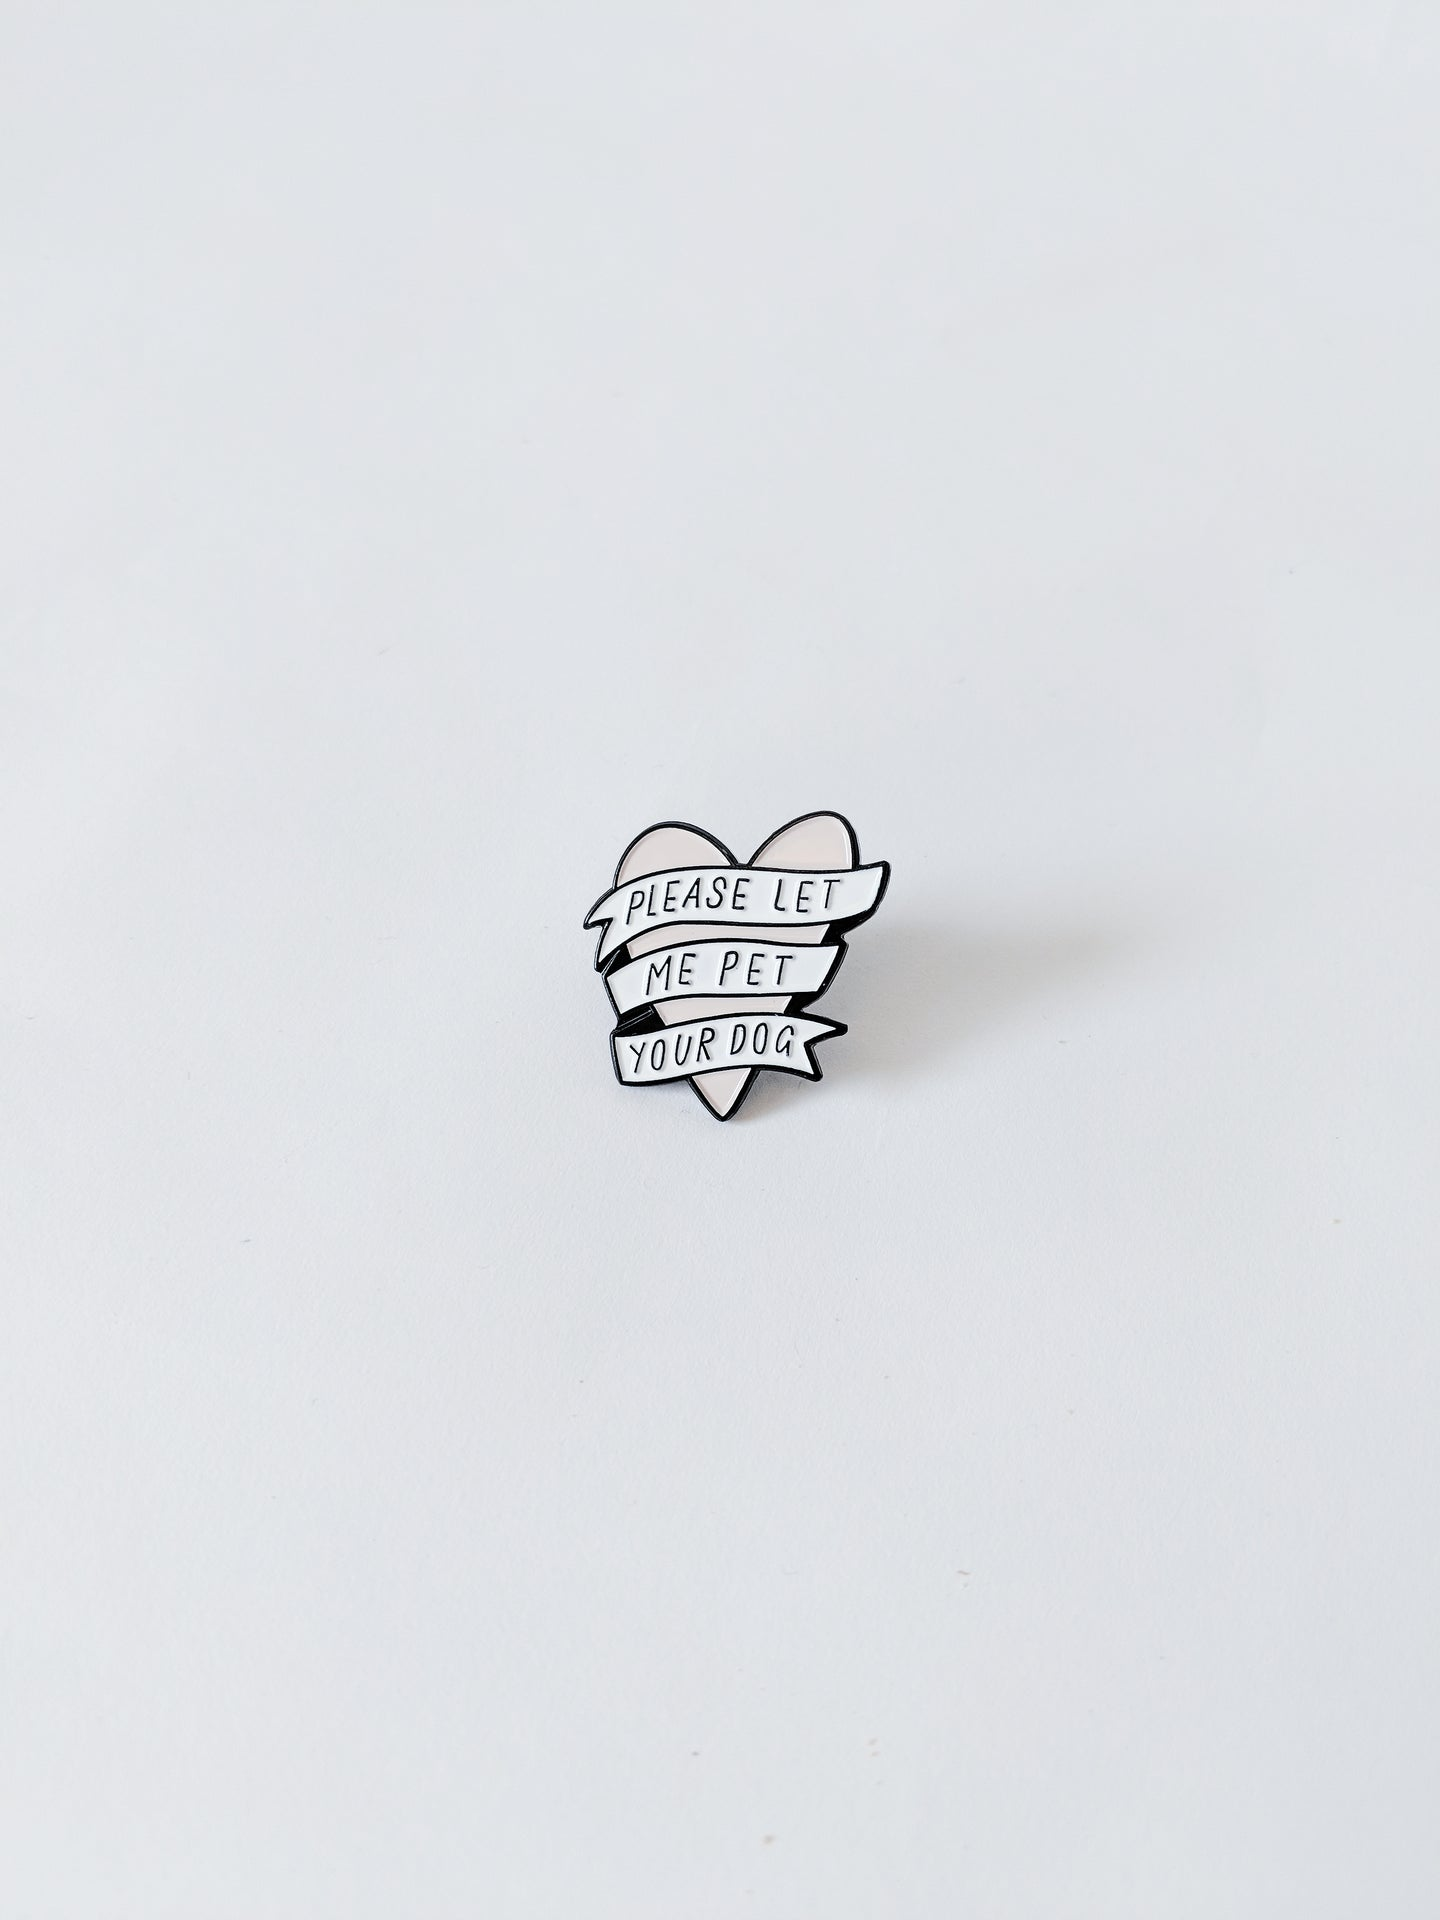 'Let Me Pet Your Dog' Enamel Pin